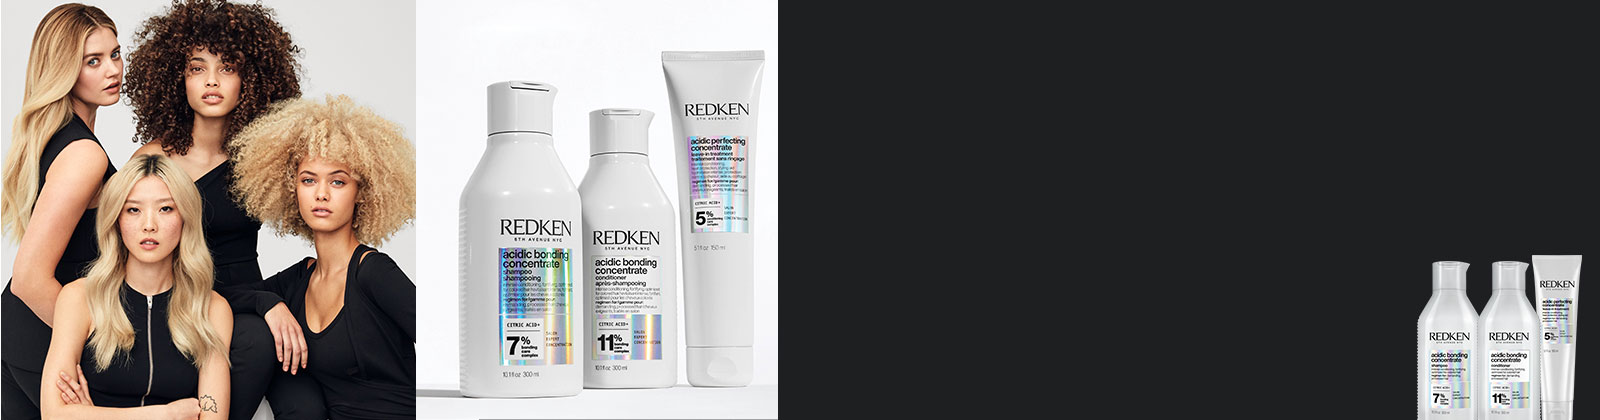 Redken 2020 Acidic Bonding Concentrate Homepage Mobile